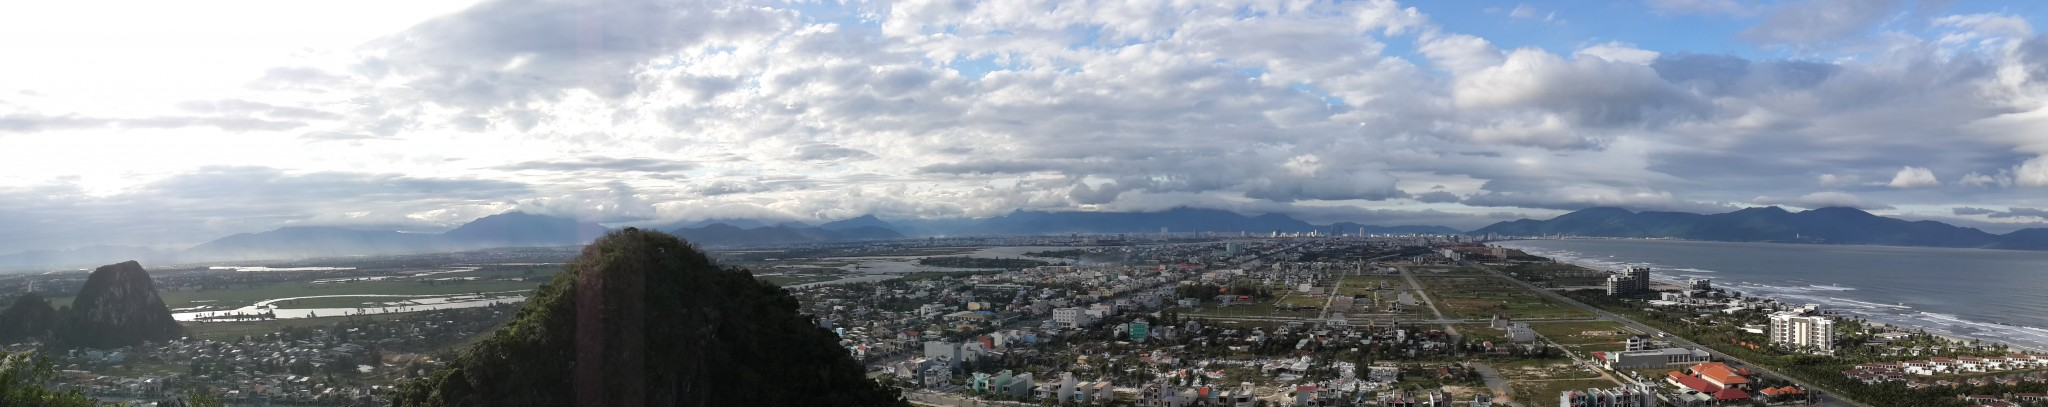 The view from the marble mountains, Da Nang